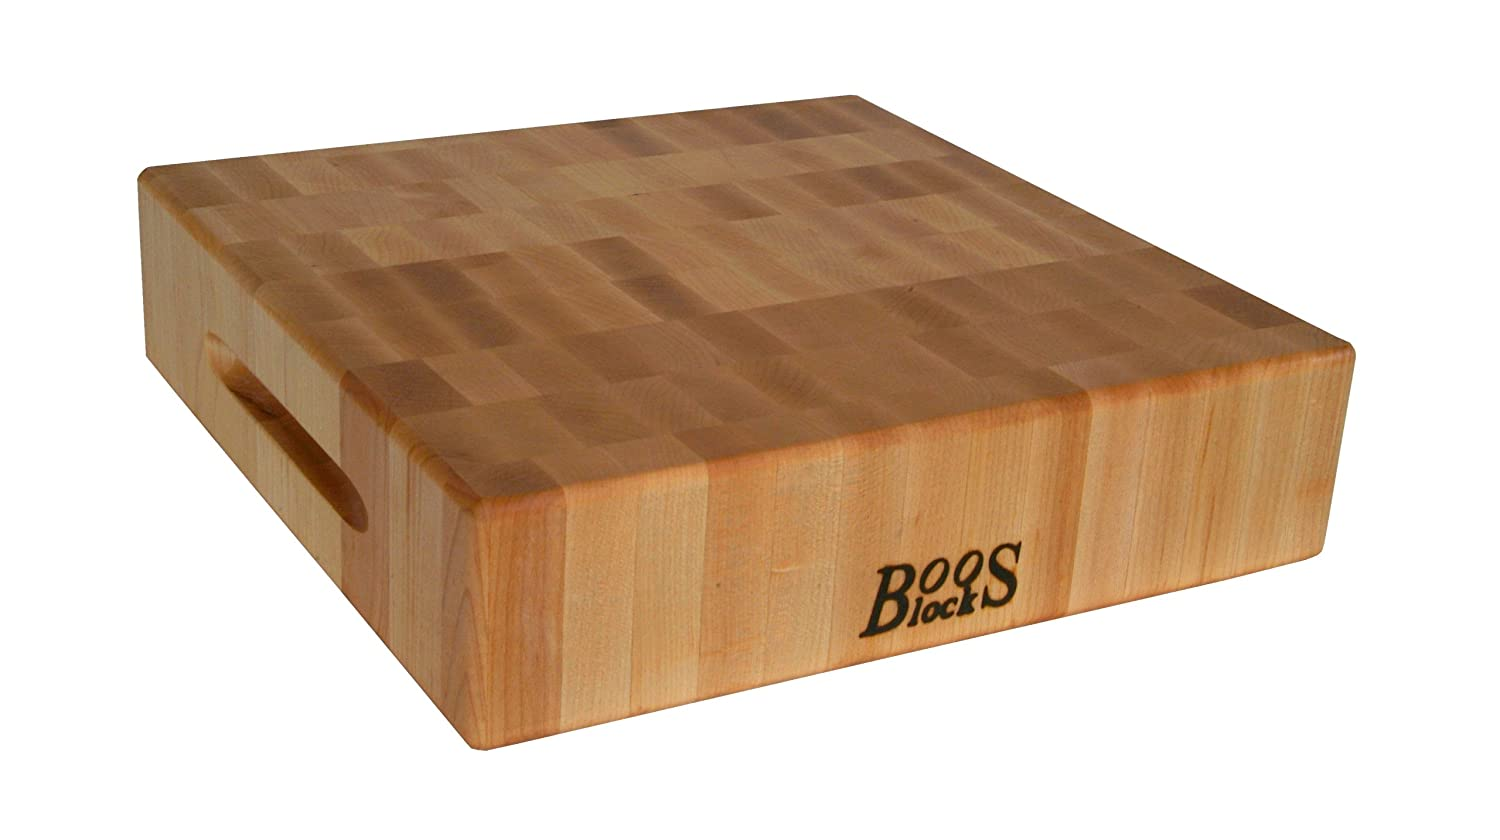 John Boos Block WAL-CCB183-S Classic Reversible Walnut Wood End Grain Chopping Block 18 Inches x 18 Inches x 3 Inches